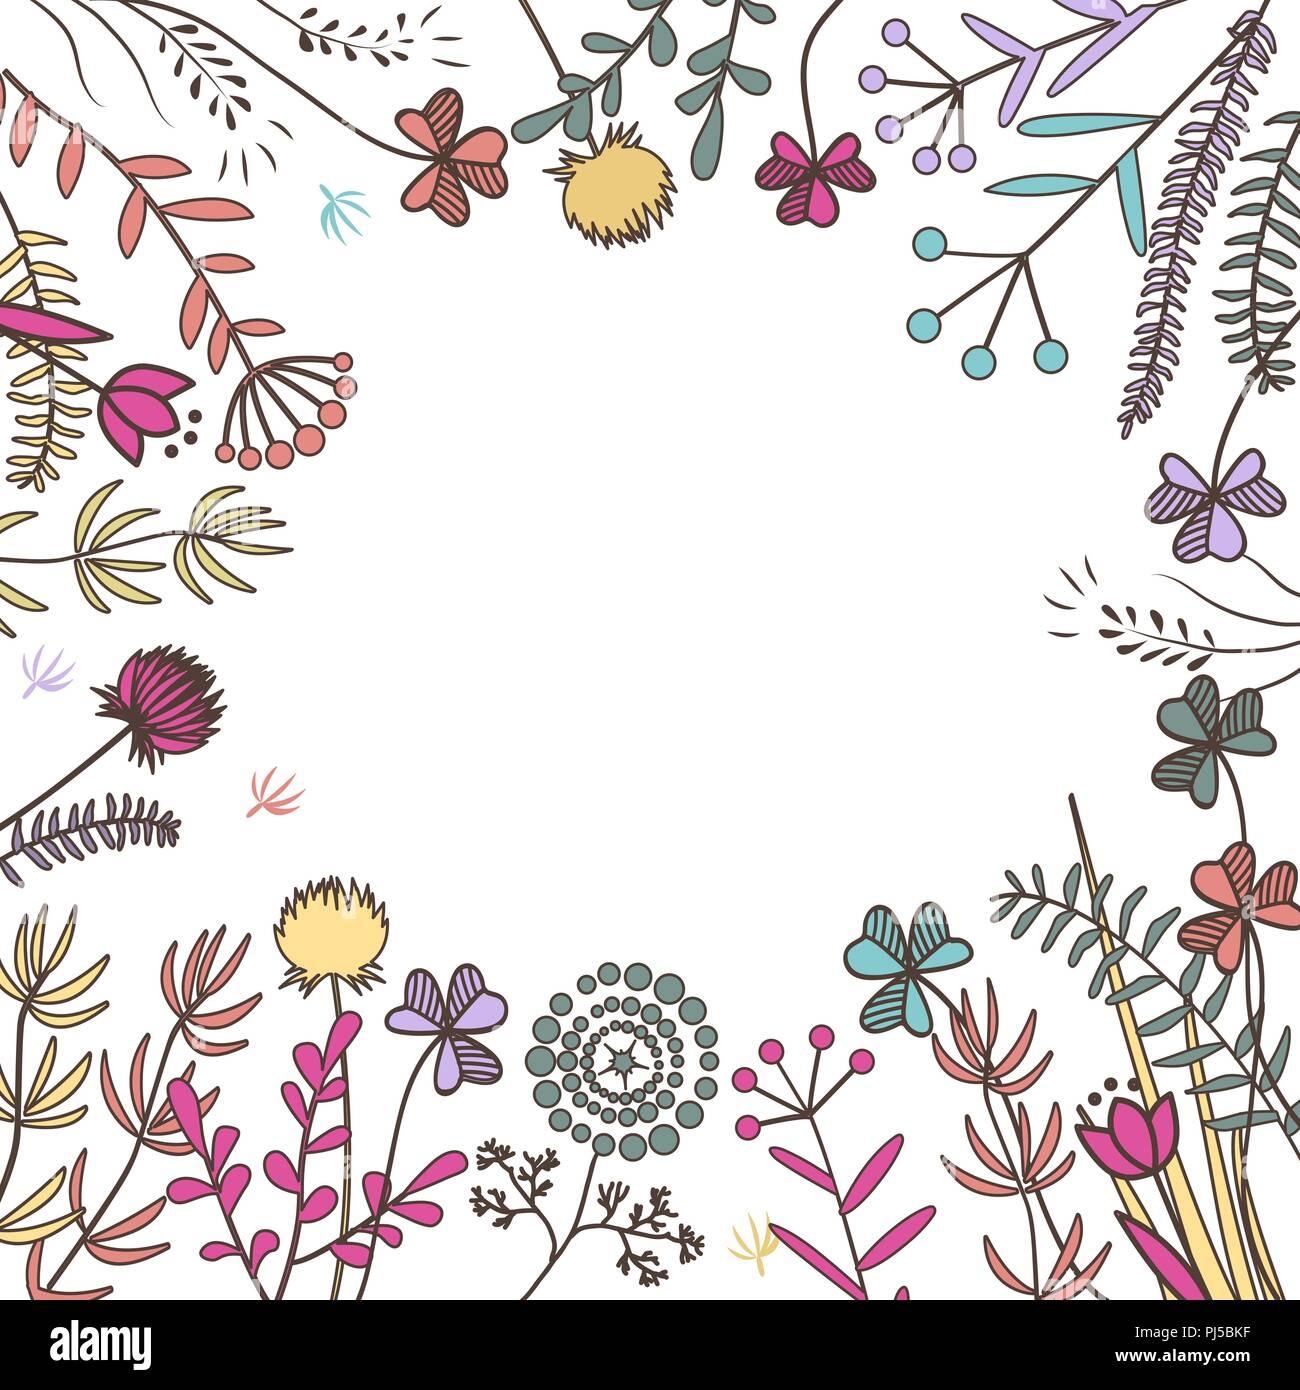 Hand Drawn Frame With Doodle Meadow Herbs Background For Autumn